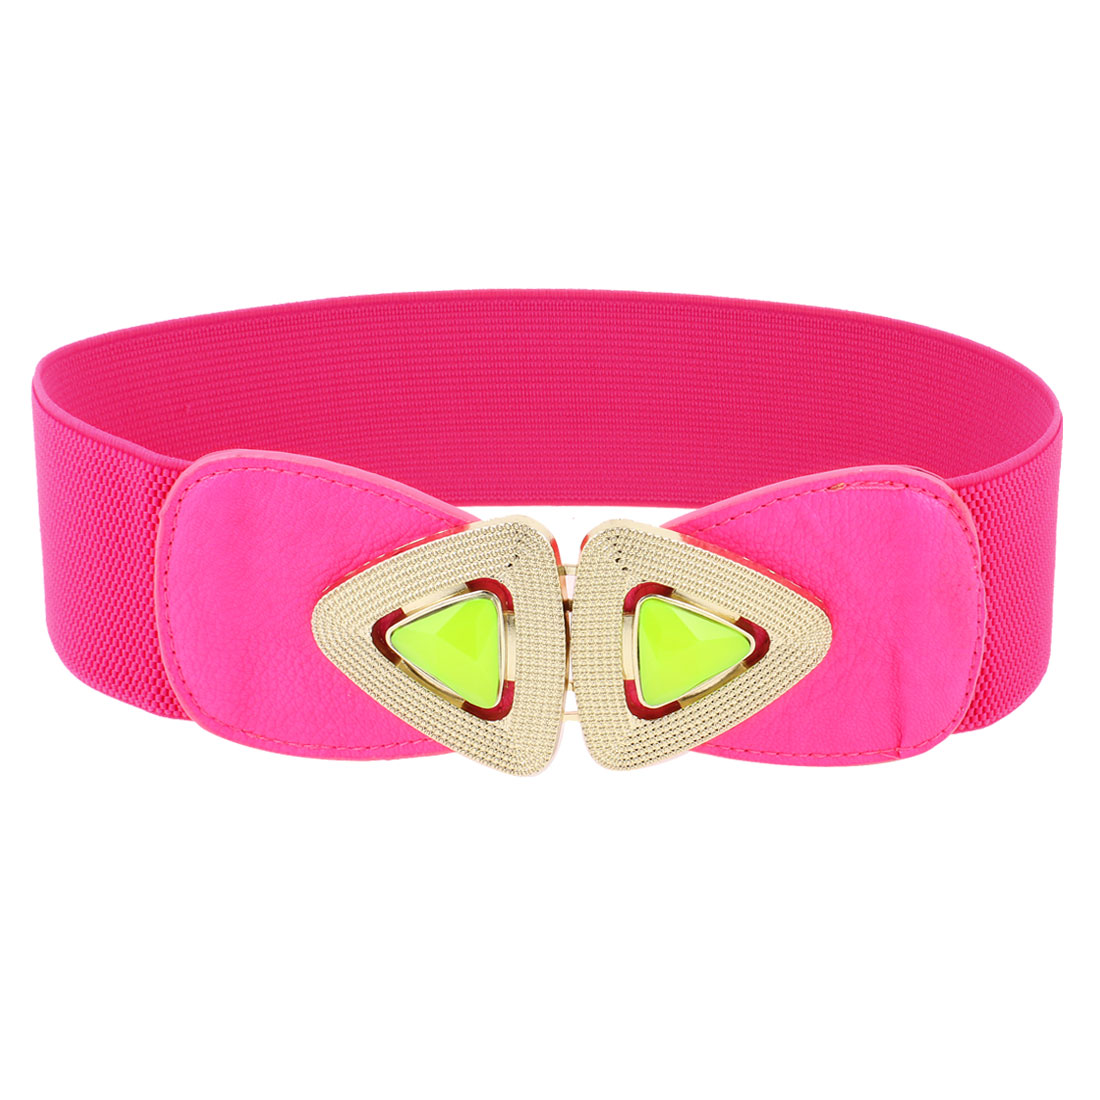 Lady Faux Leather Front Plastic Faceted Bead Interlock Buckle Waist Belt Fuchsia